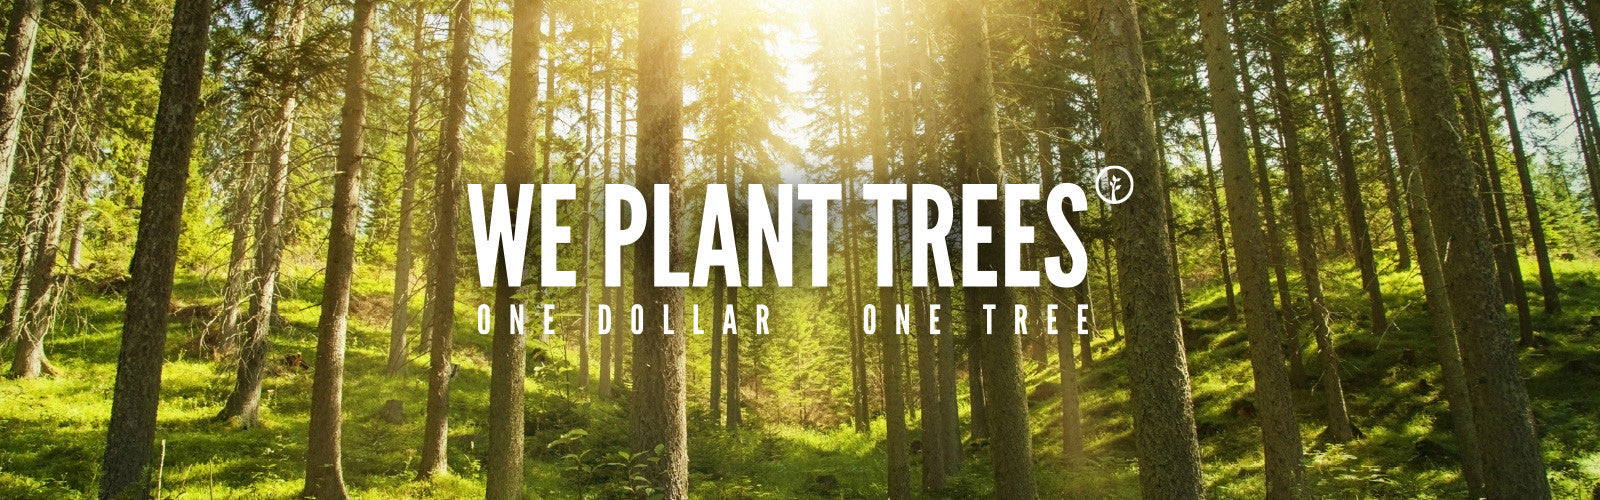 We Plant Trees | Treegear and One Tree Planted - The ...